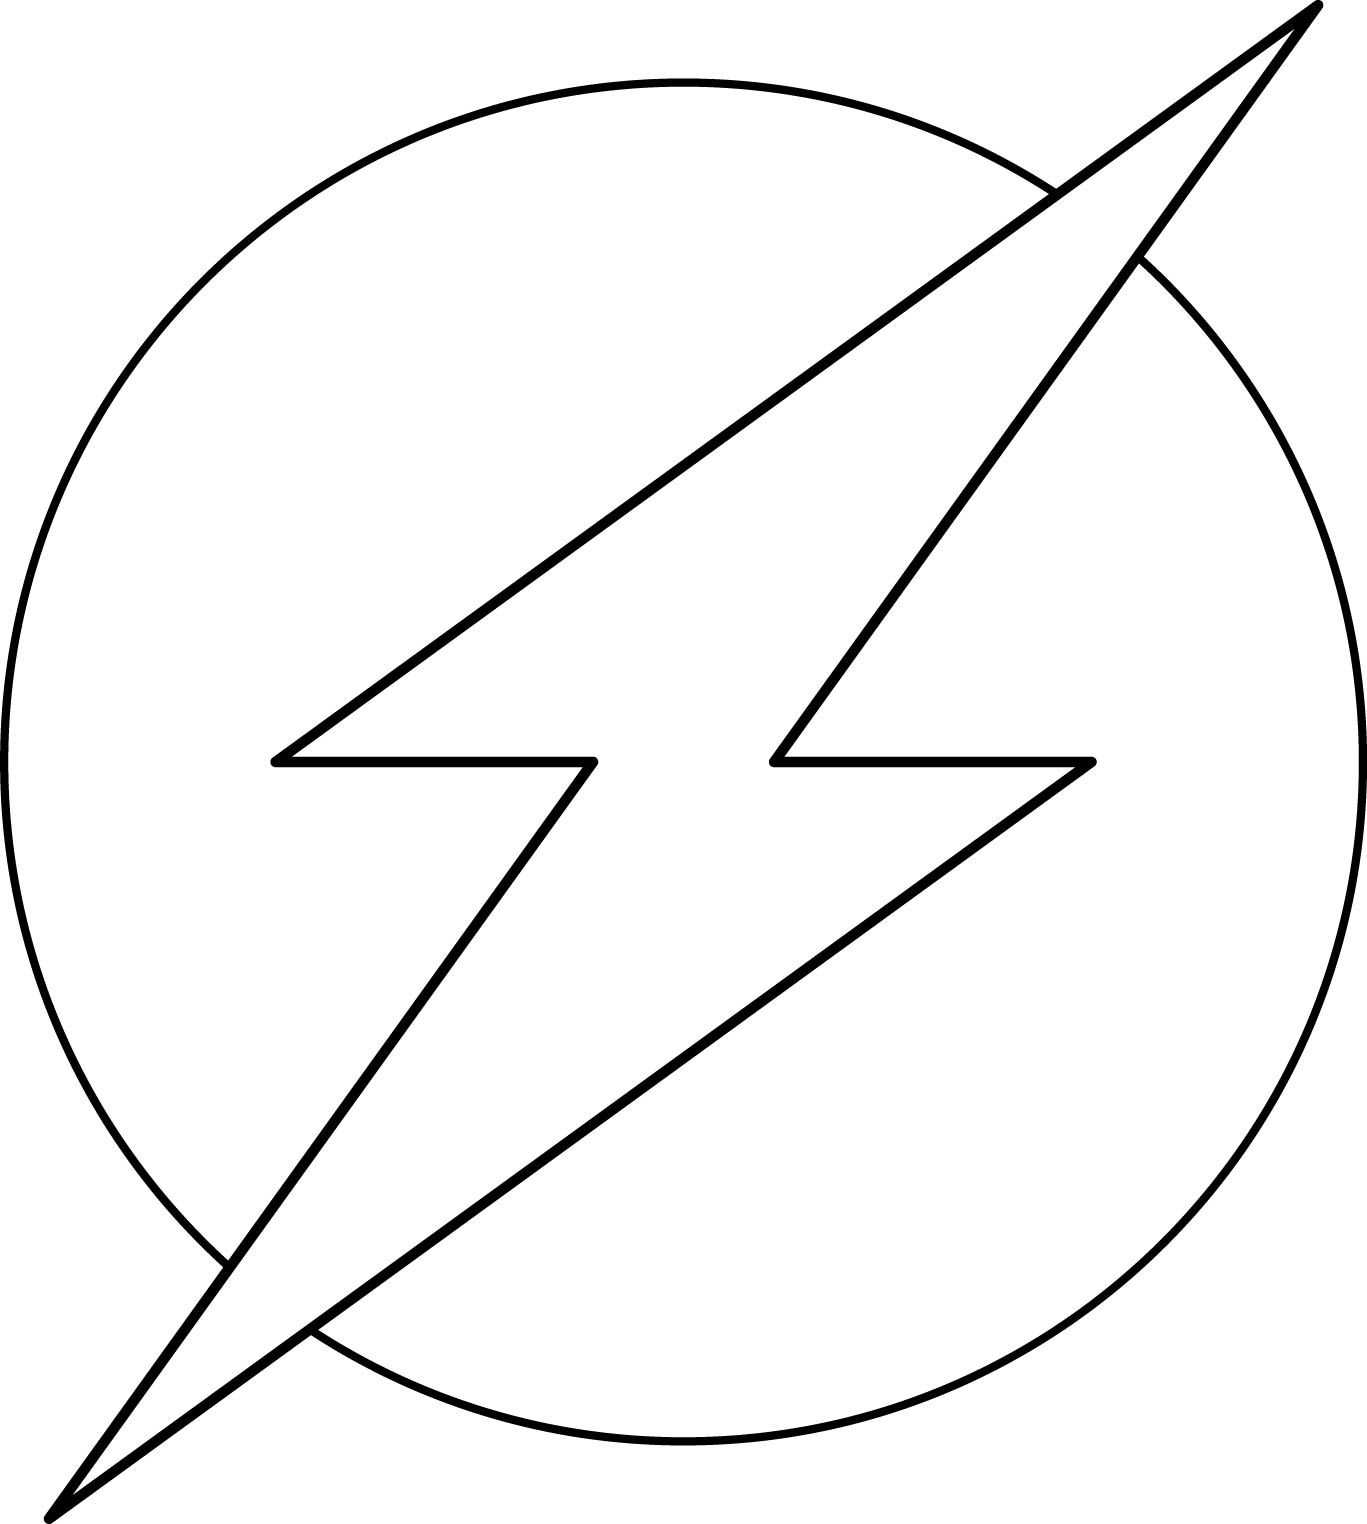 Super Heroes Logos Coloring Pages